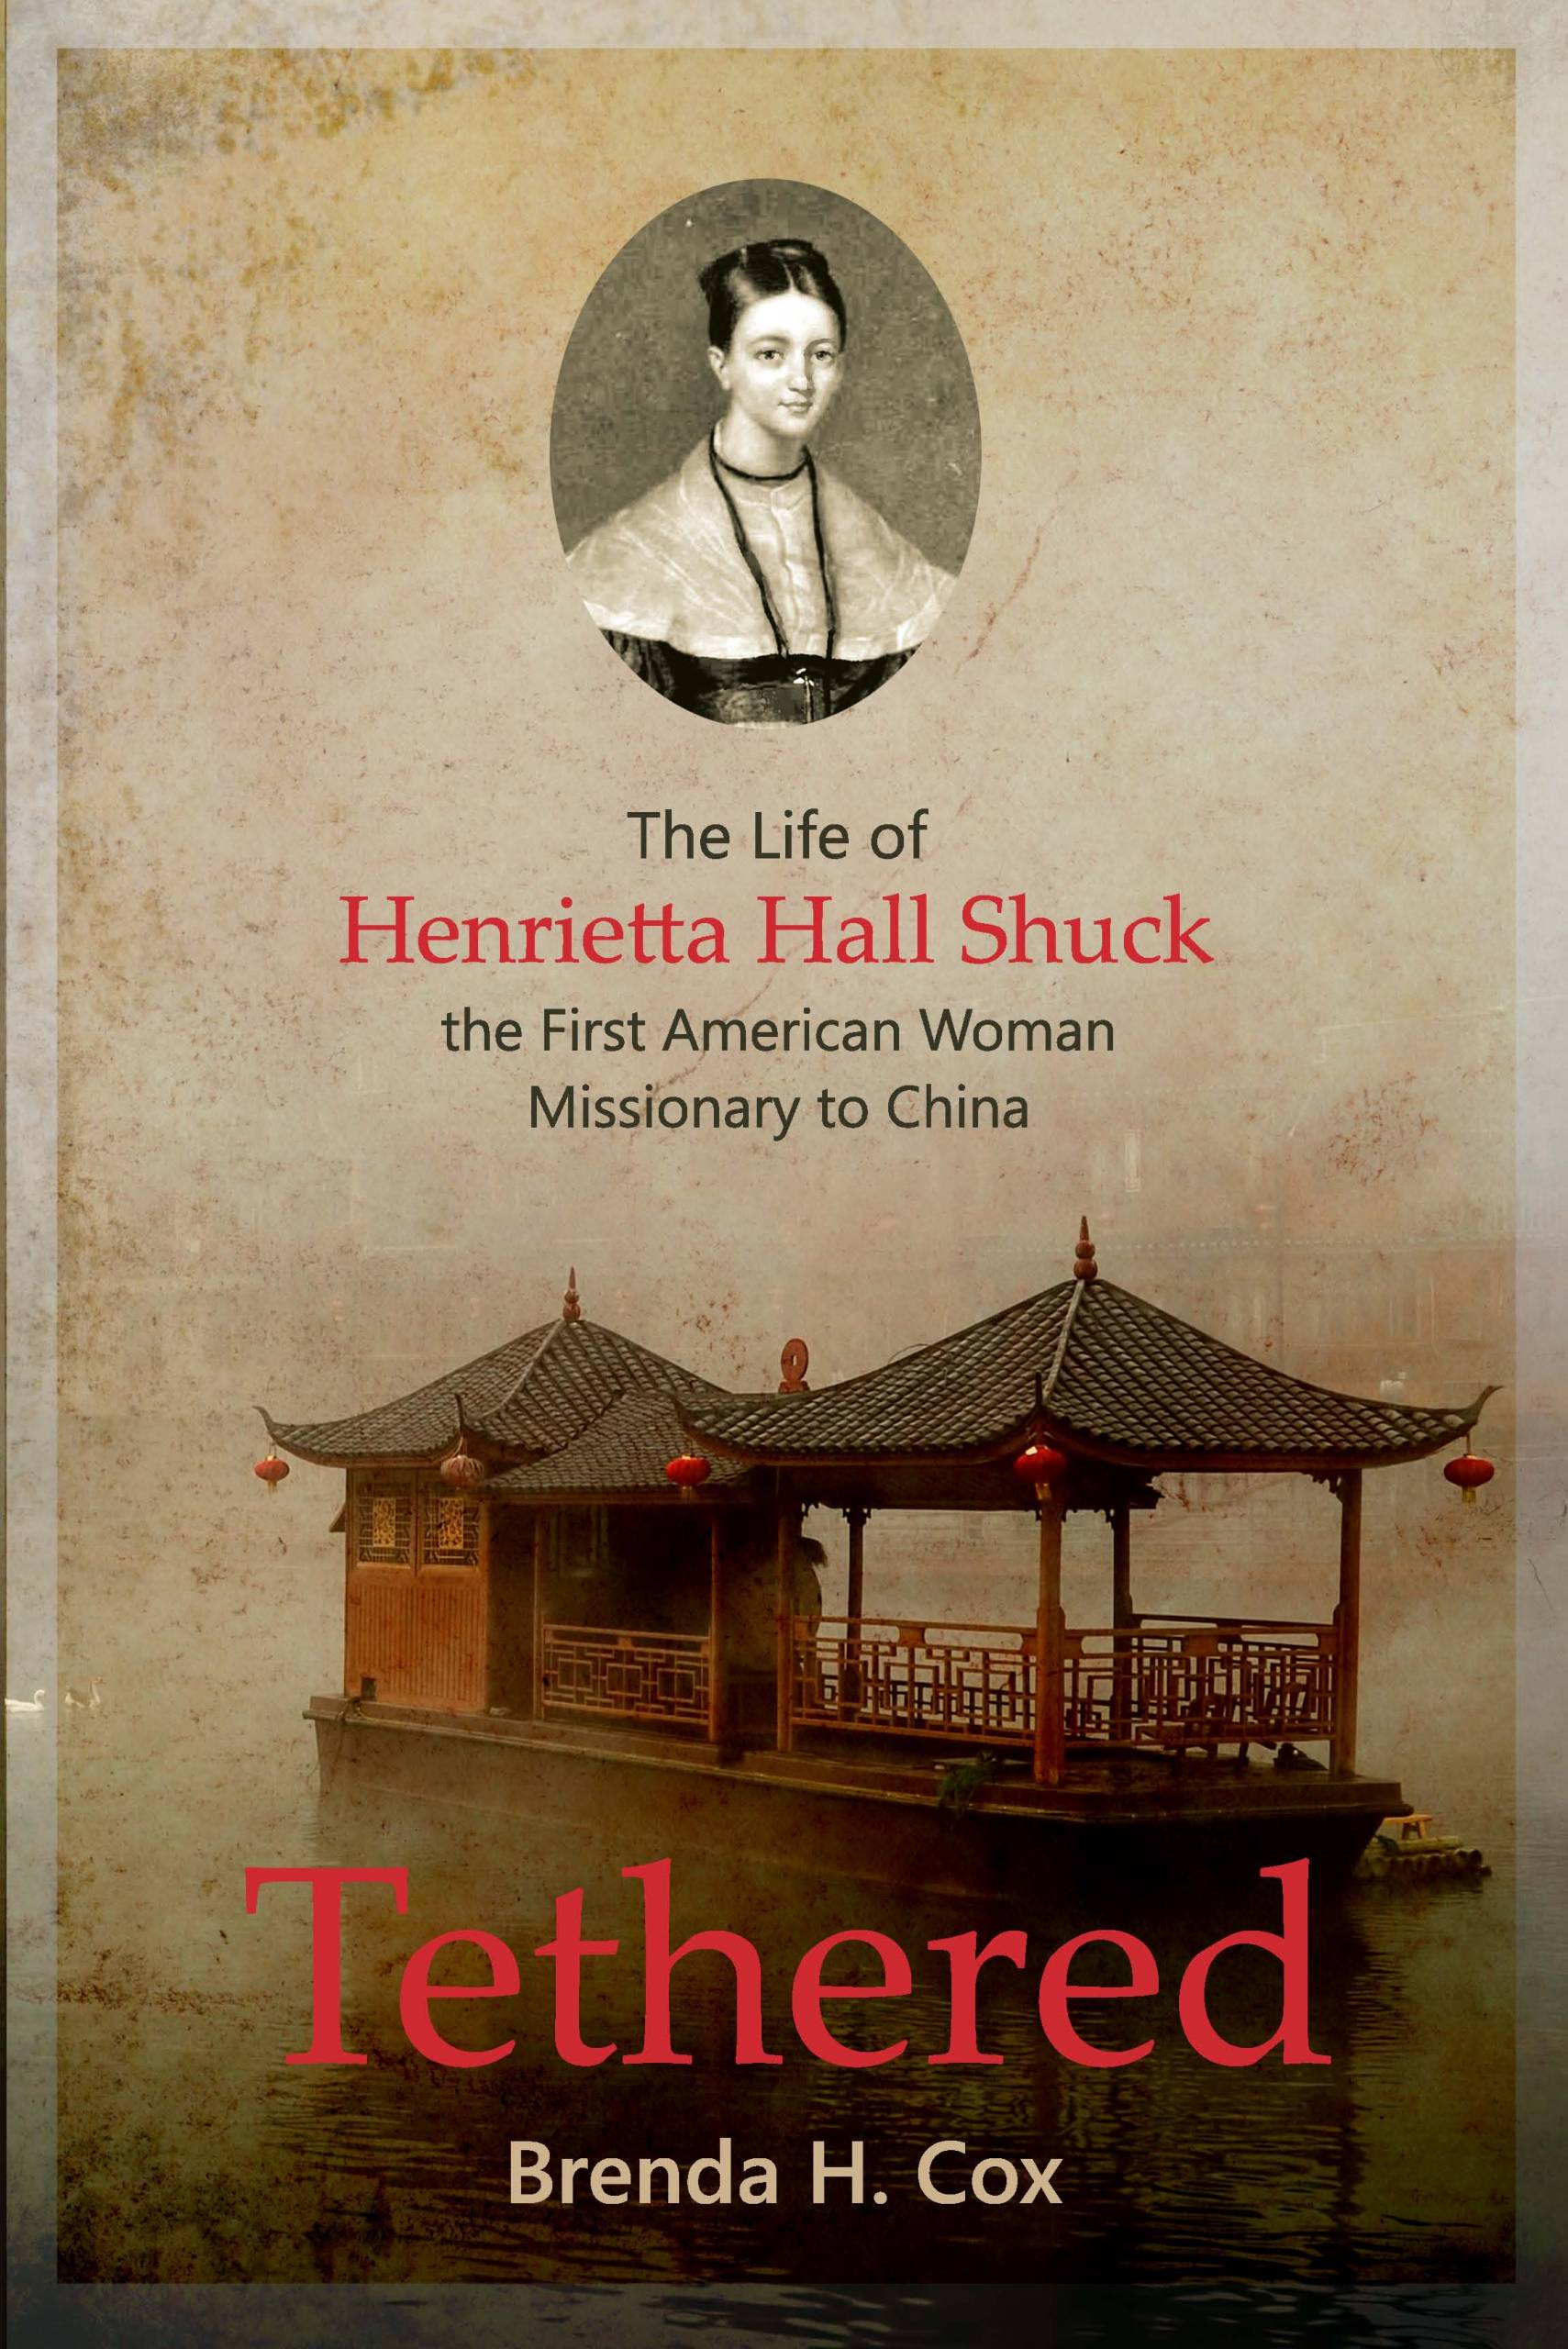 Tethered: The Life of Henrietta Hall Schuck, the First American Woman Missionary to China